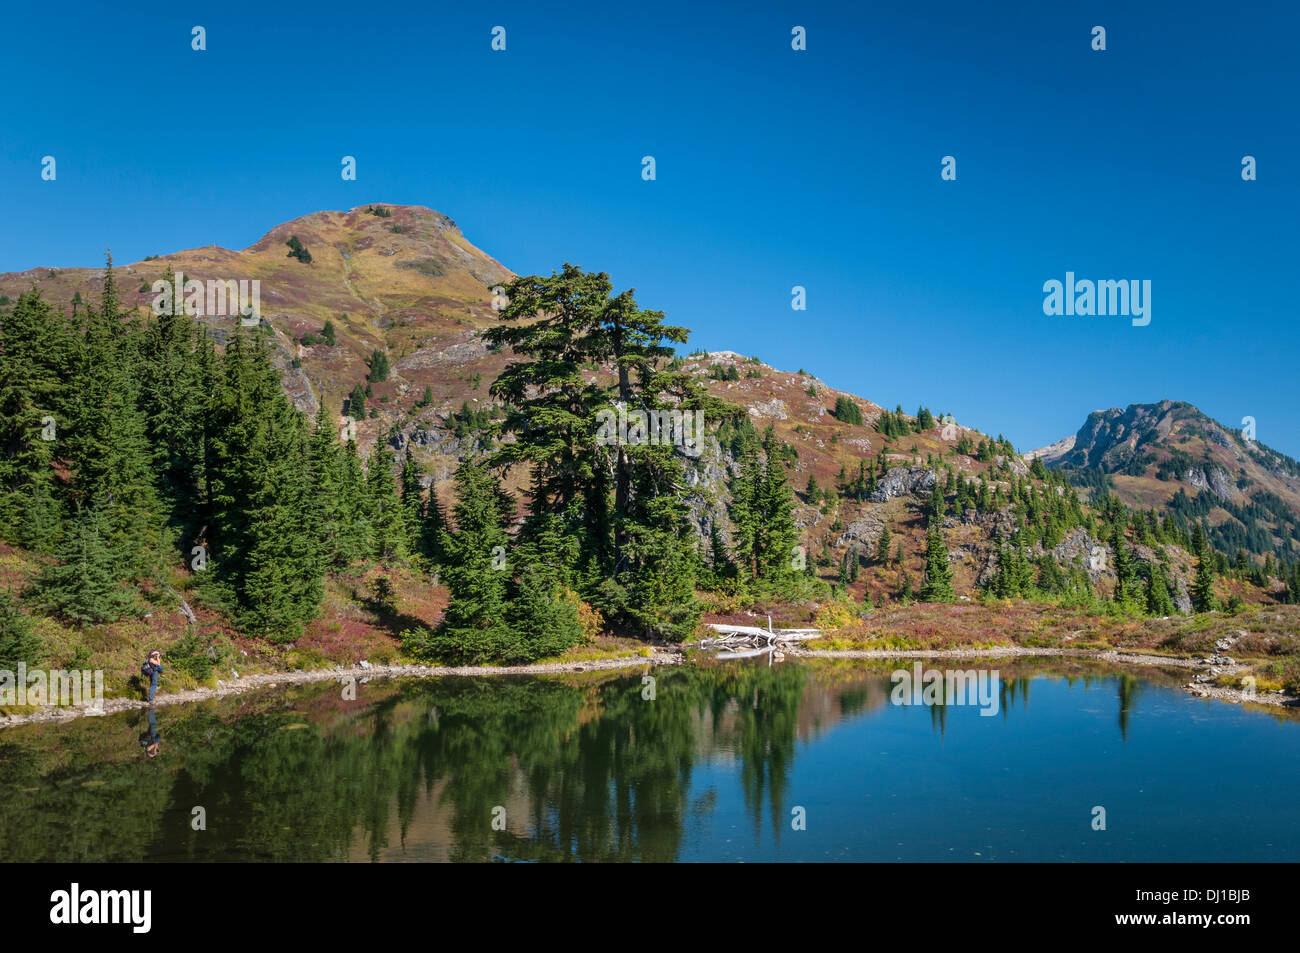 Tarn below Yellow Aster Butte, Mount-Baker Snoqualmie National Forest, North Cascades, Washington. - Stock Image